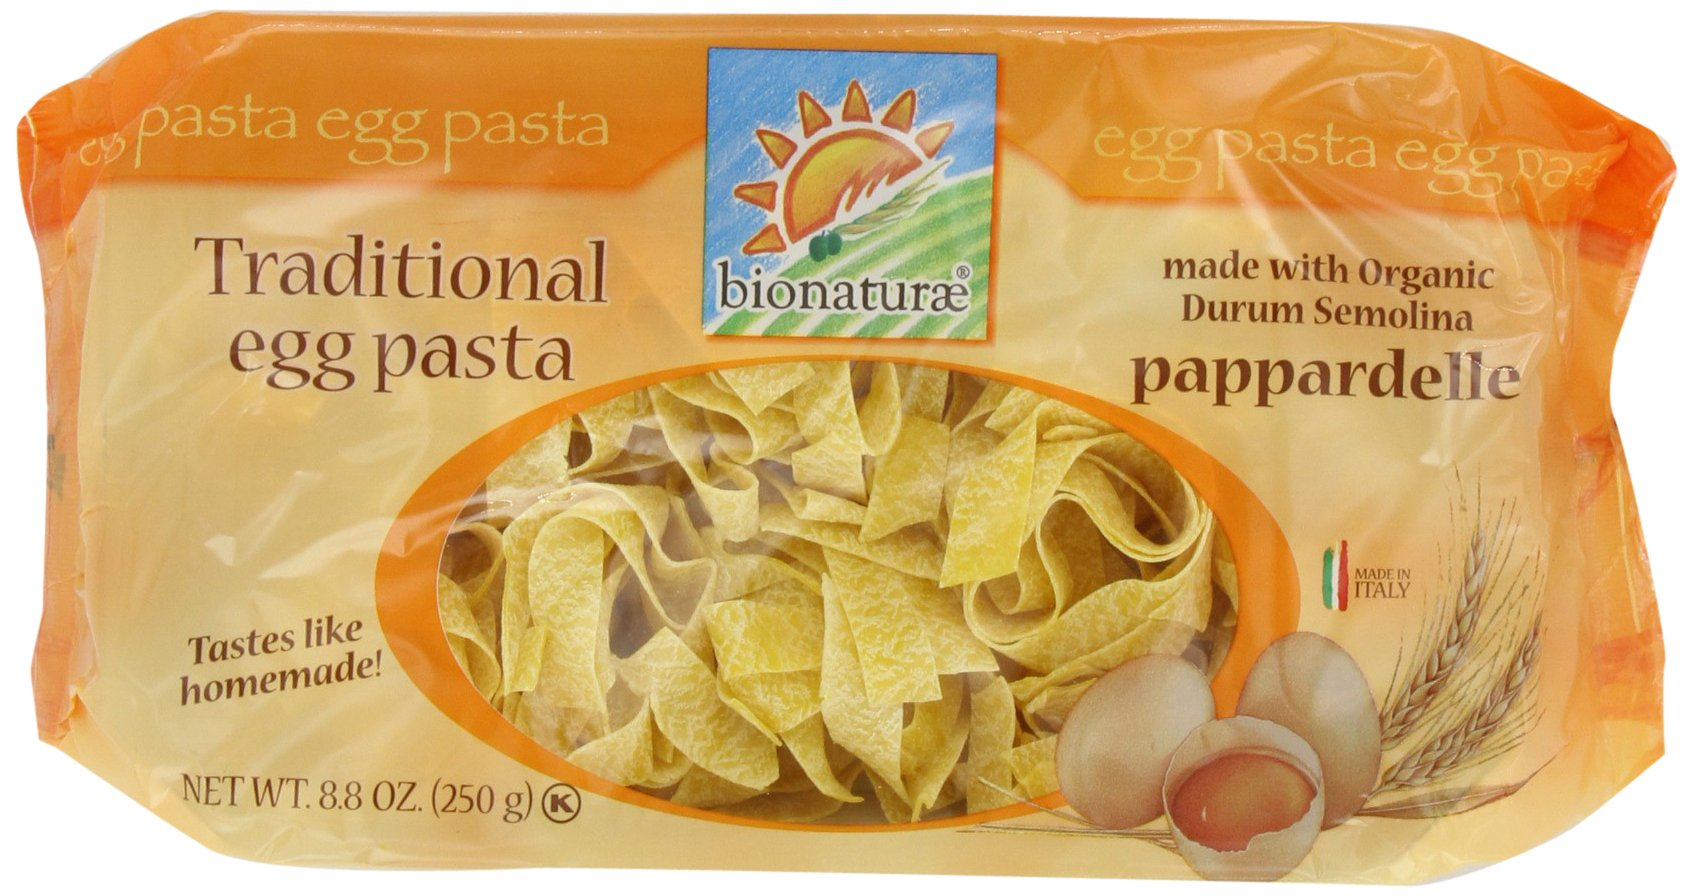 bionaturae With Organic Durum Semolina Pappardelle Egg Pasta, 8.8 Ounce Bags (Pack of 6)